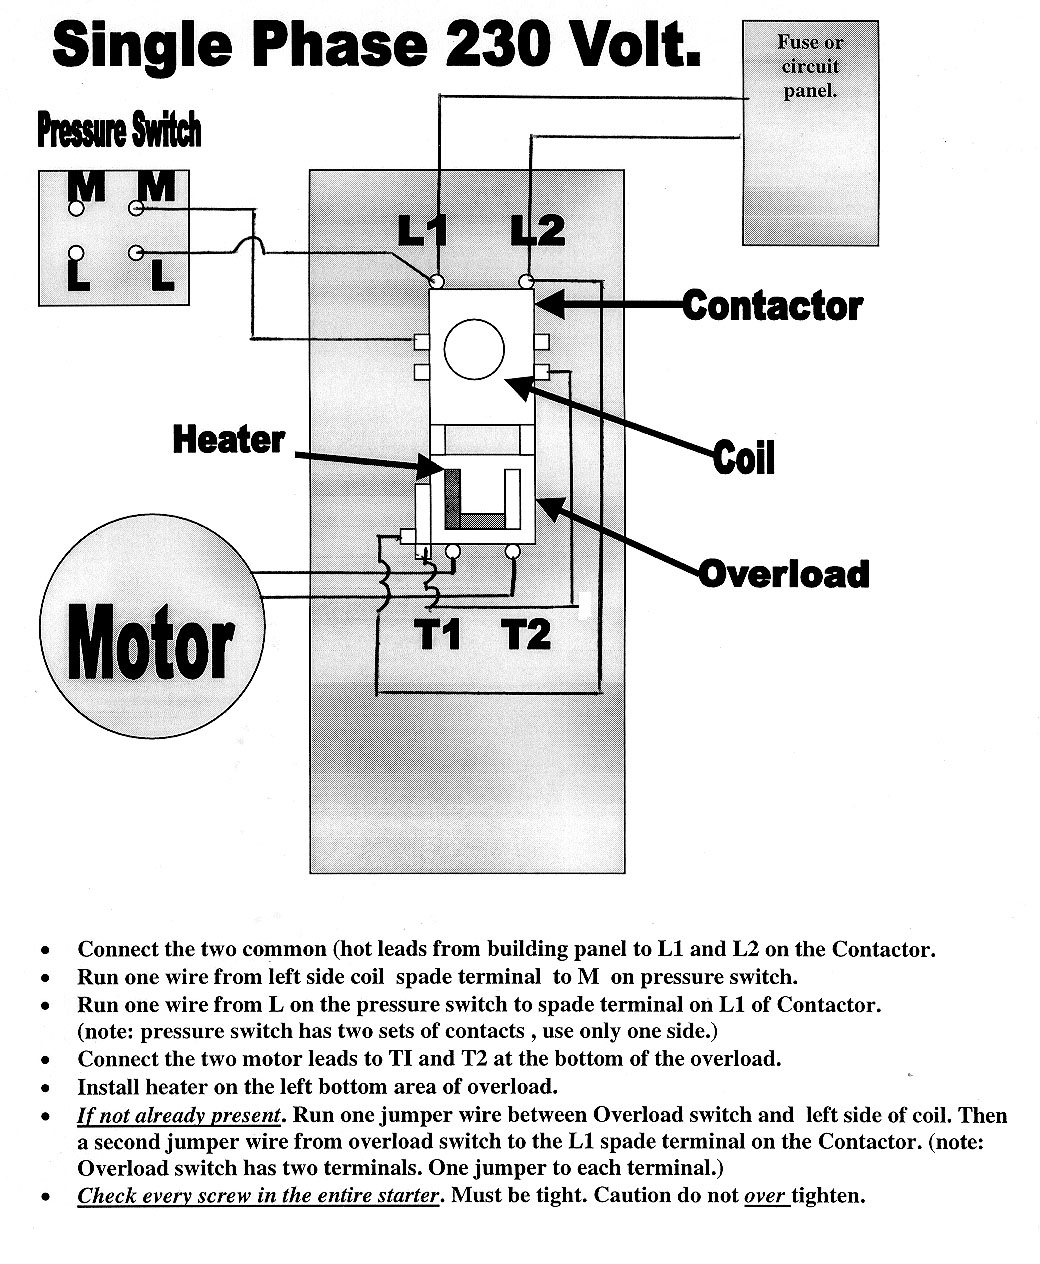 single phase motor starter wiring diagram pdf Download-Fancy Electric Motor Wiring Diagram Single Phase 47 About Remodel With Three Weg 3 For Motors 6-p